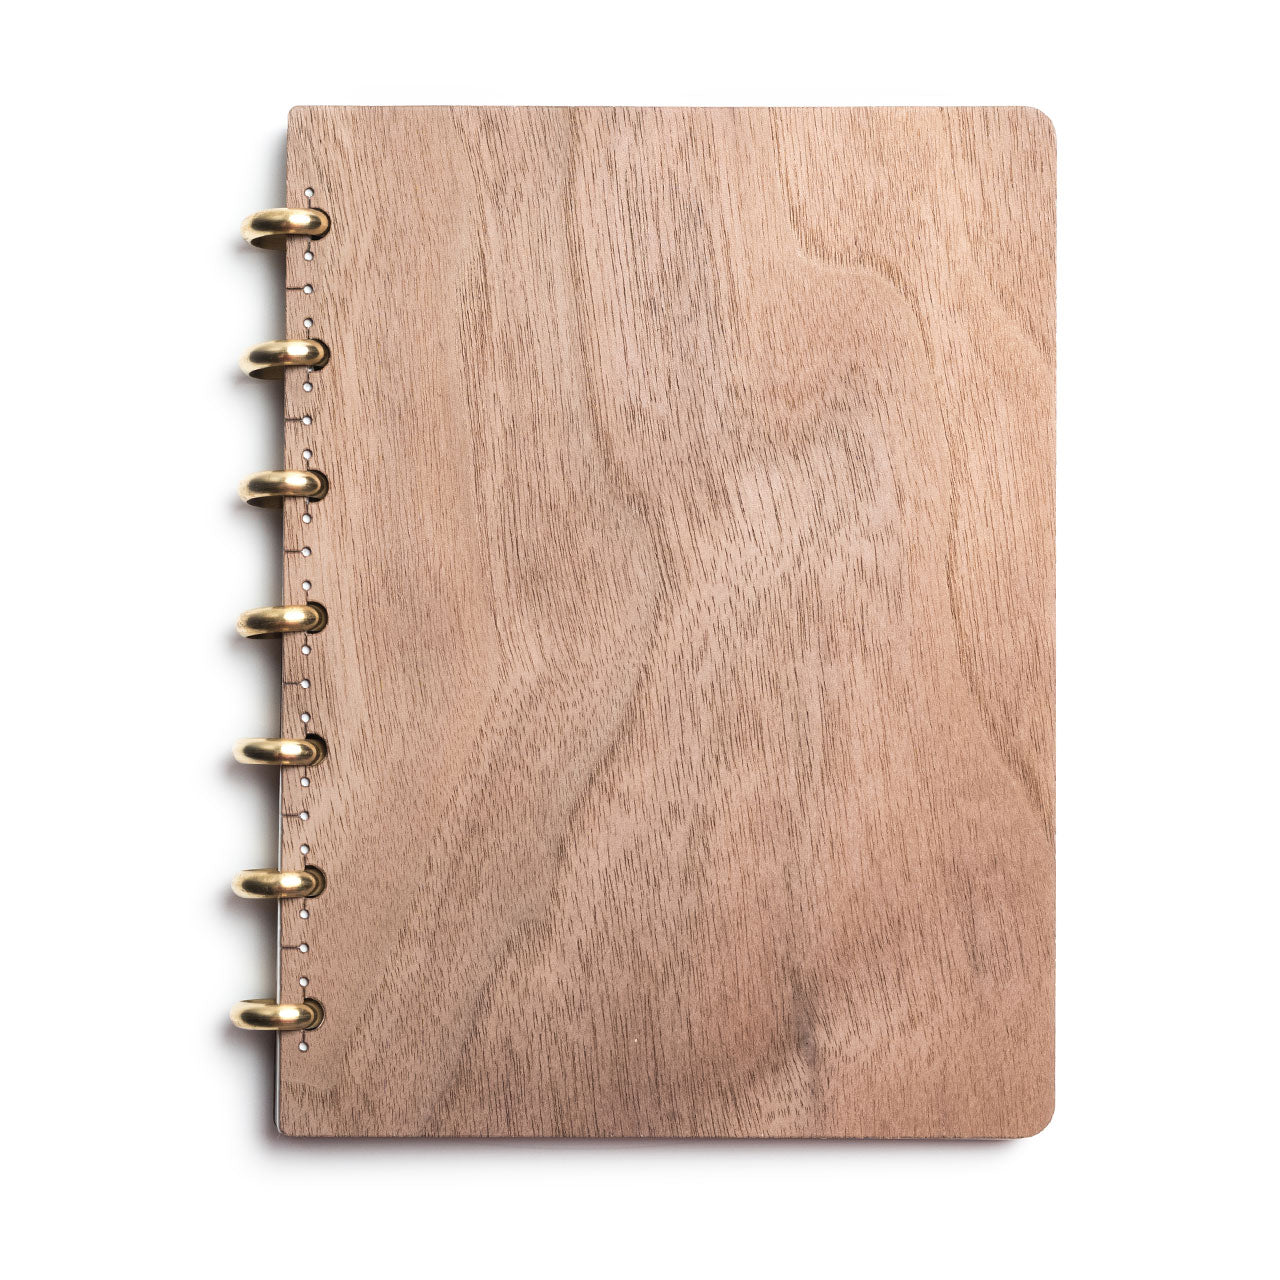 Pacific & West Wood Notebook